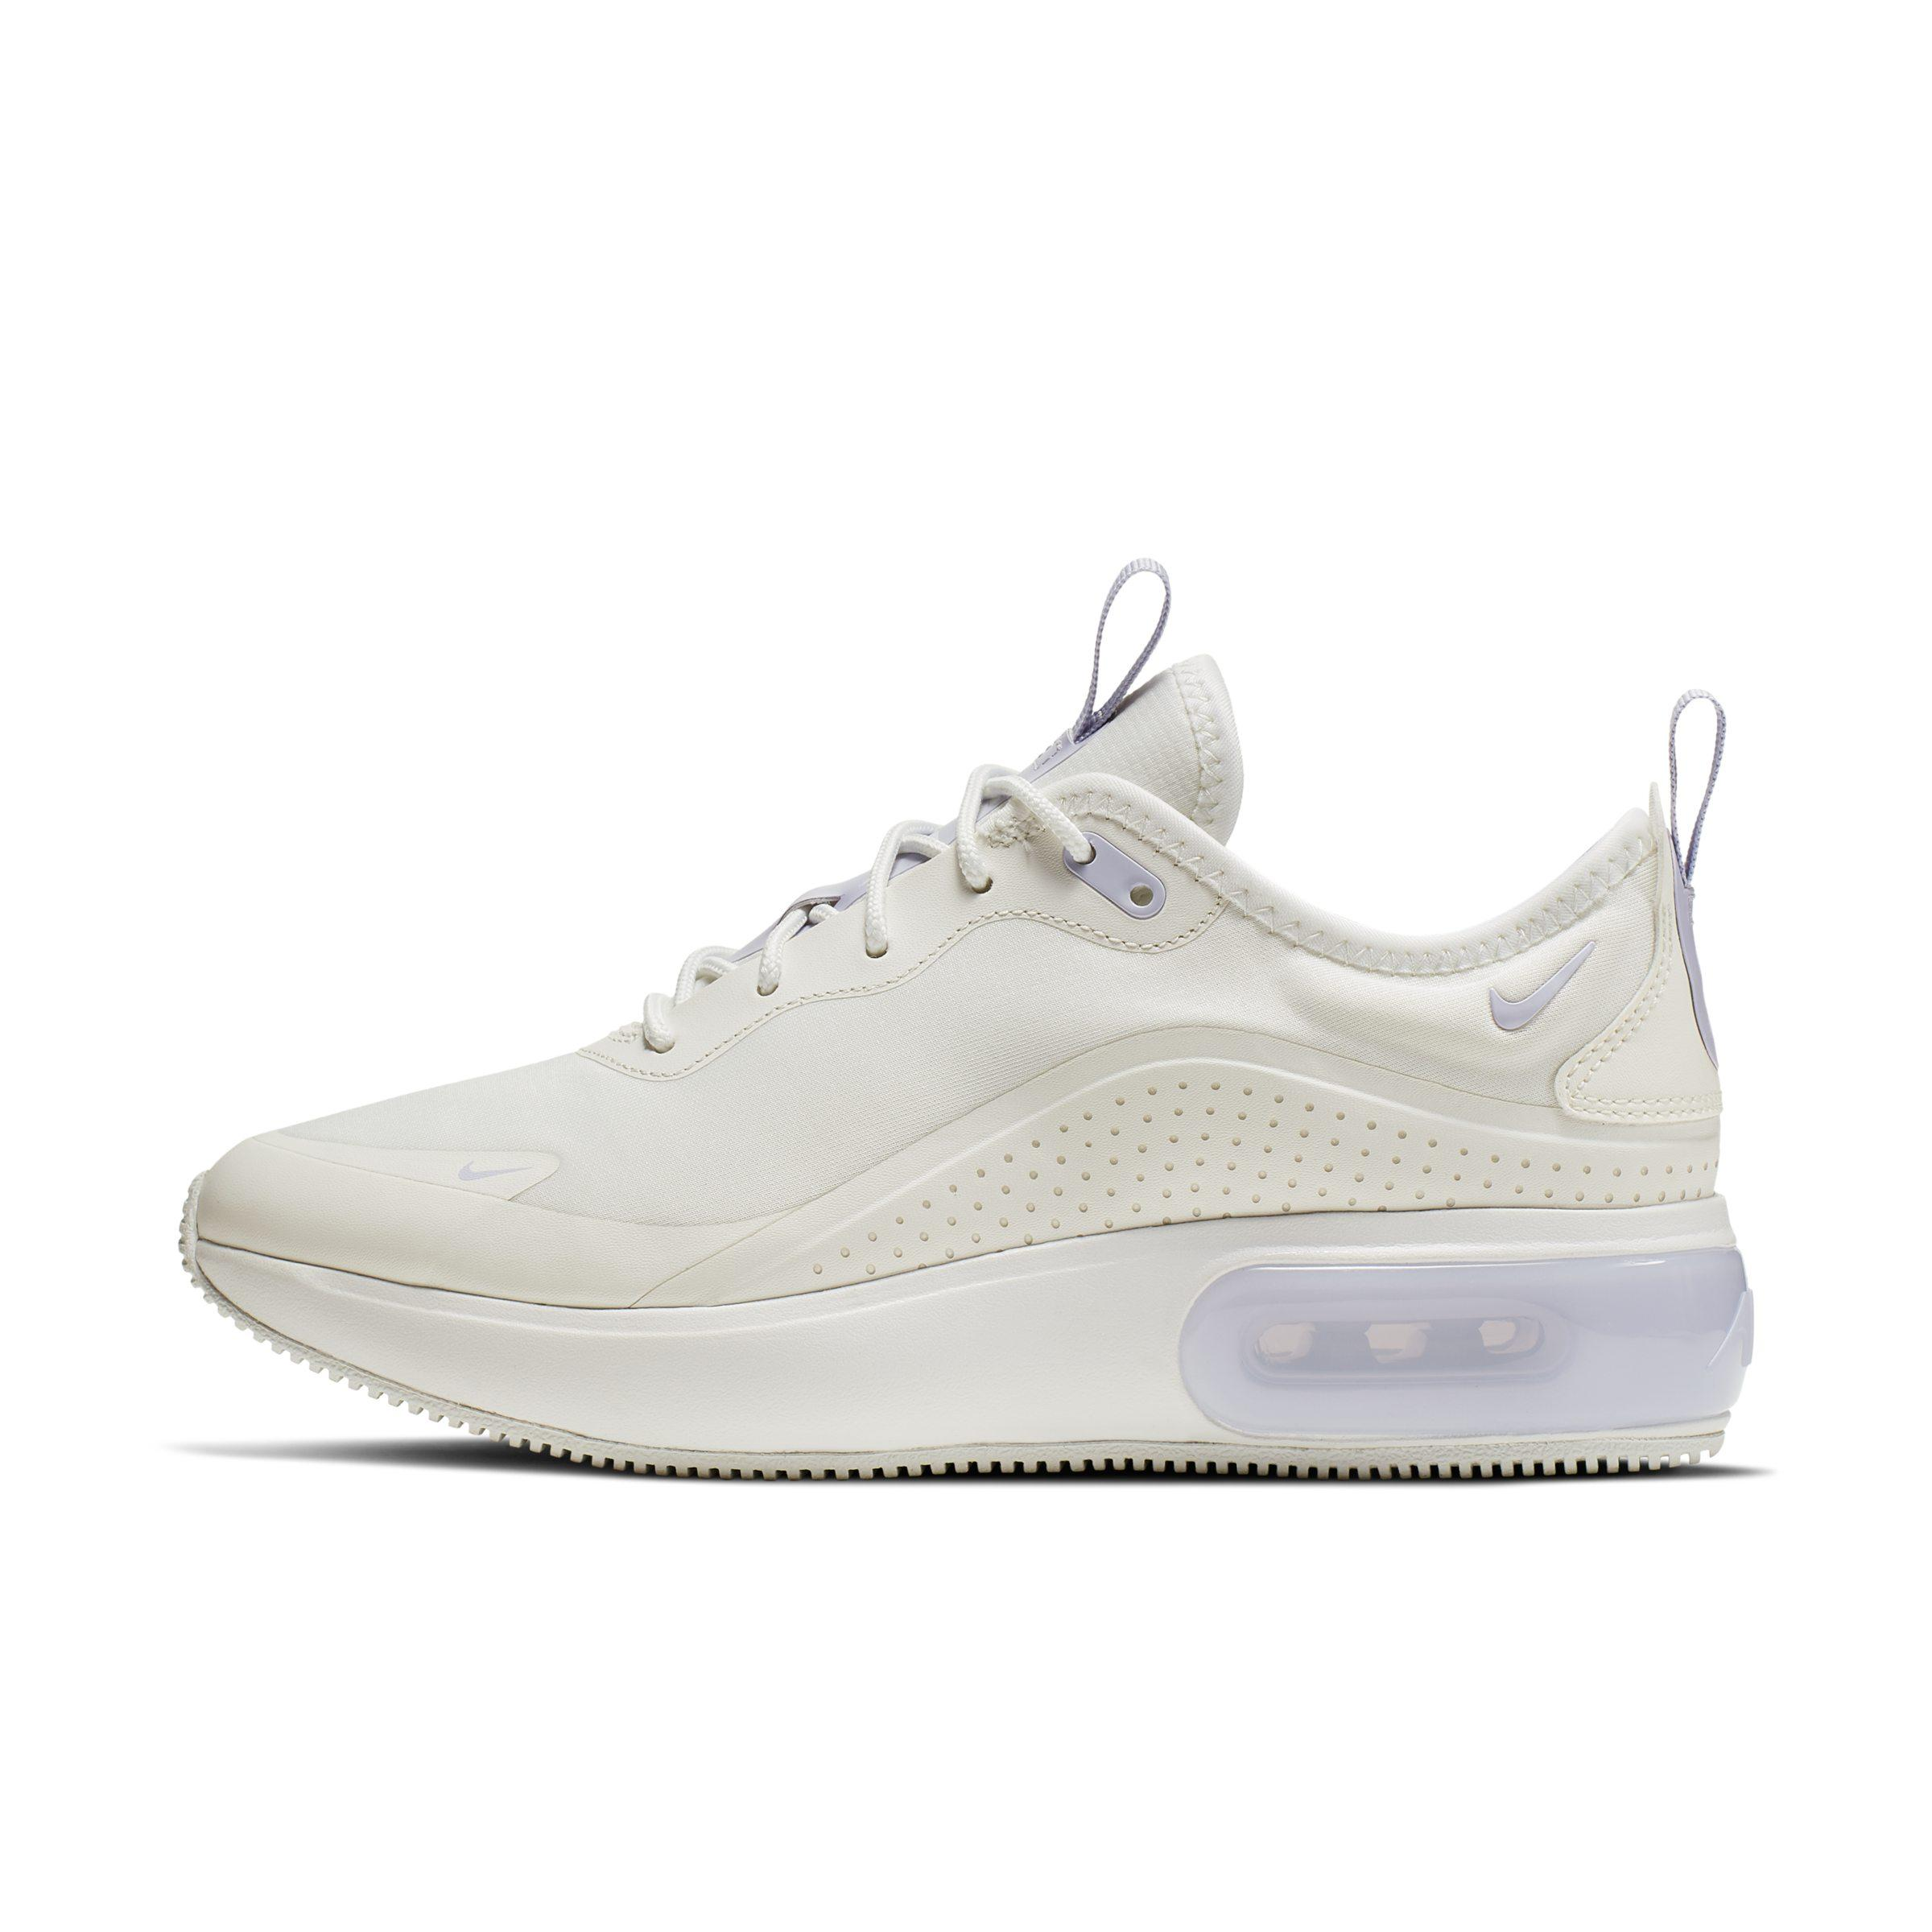 Nike Air Max 95 Sneakers for Women Up to 55% off at Lyst